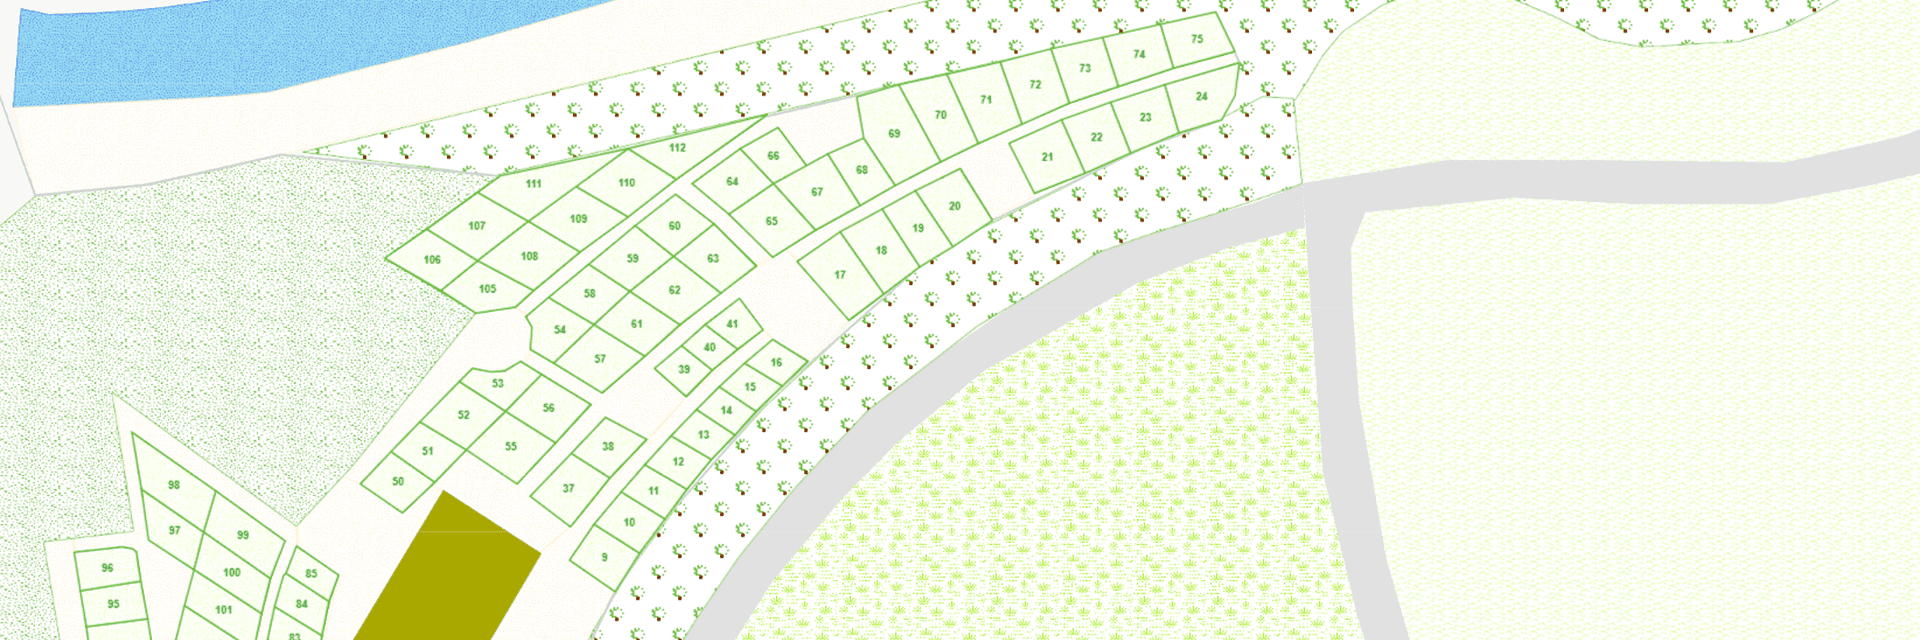 Mapping the Public Garden